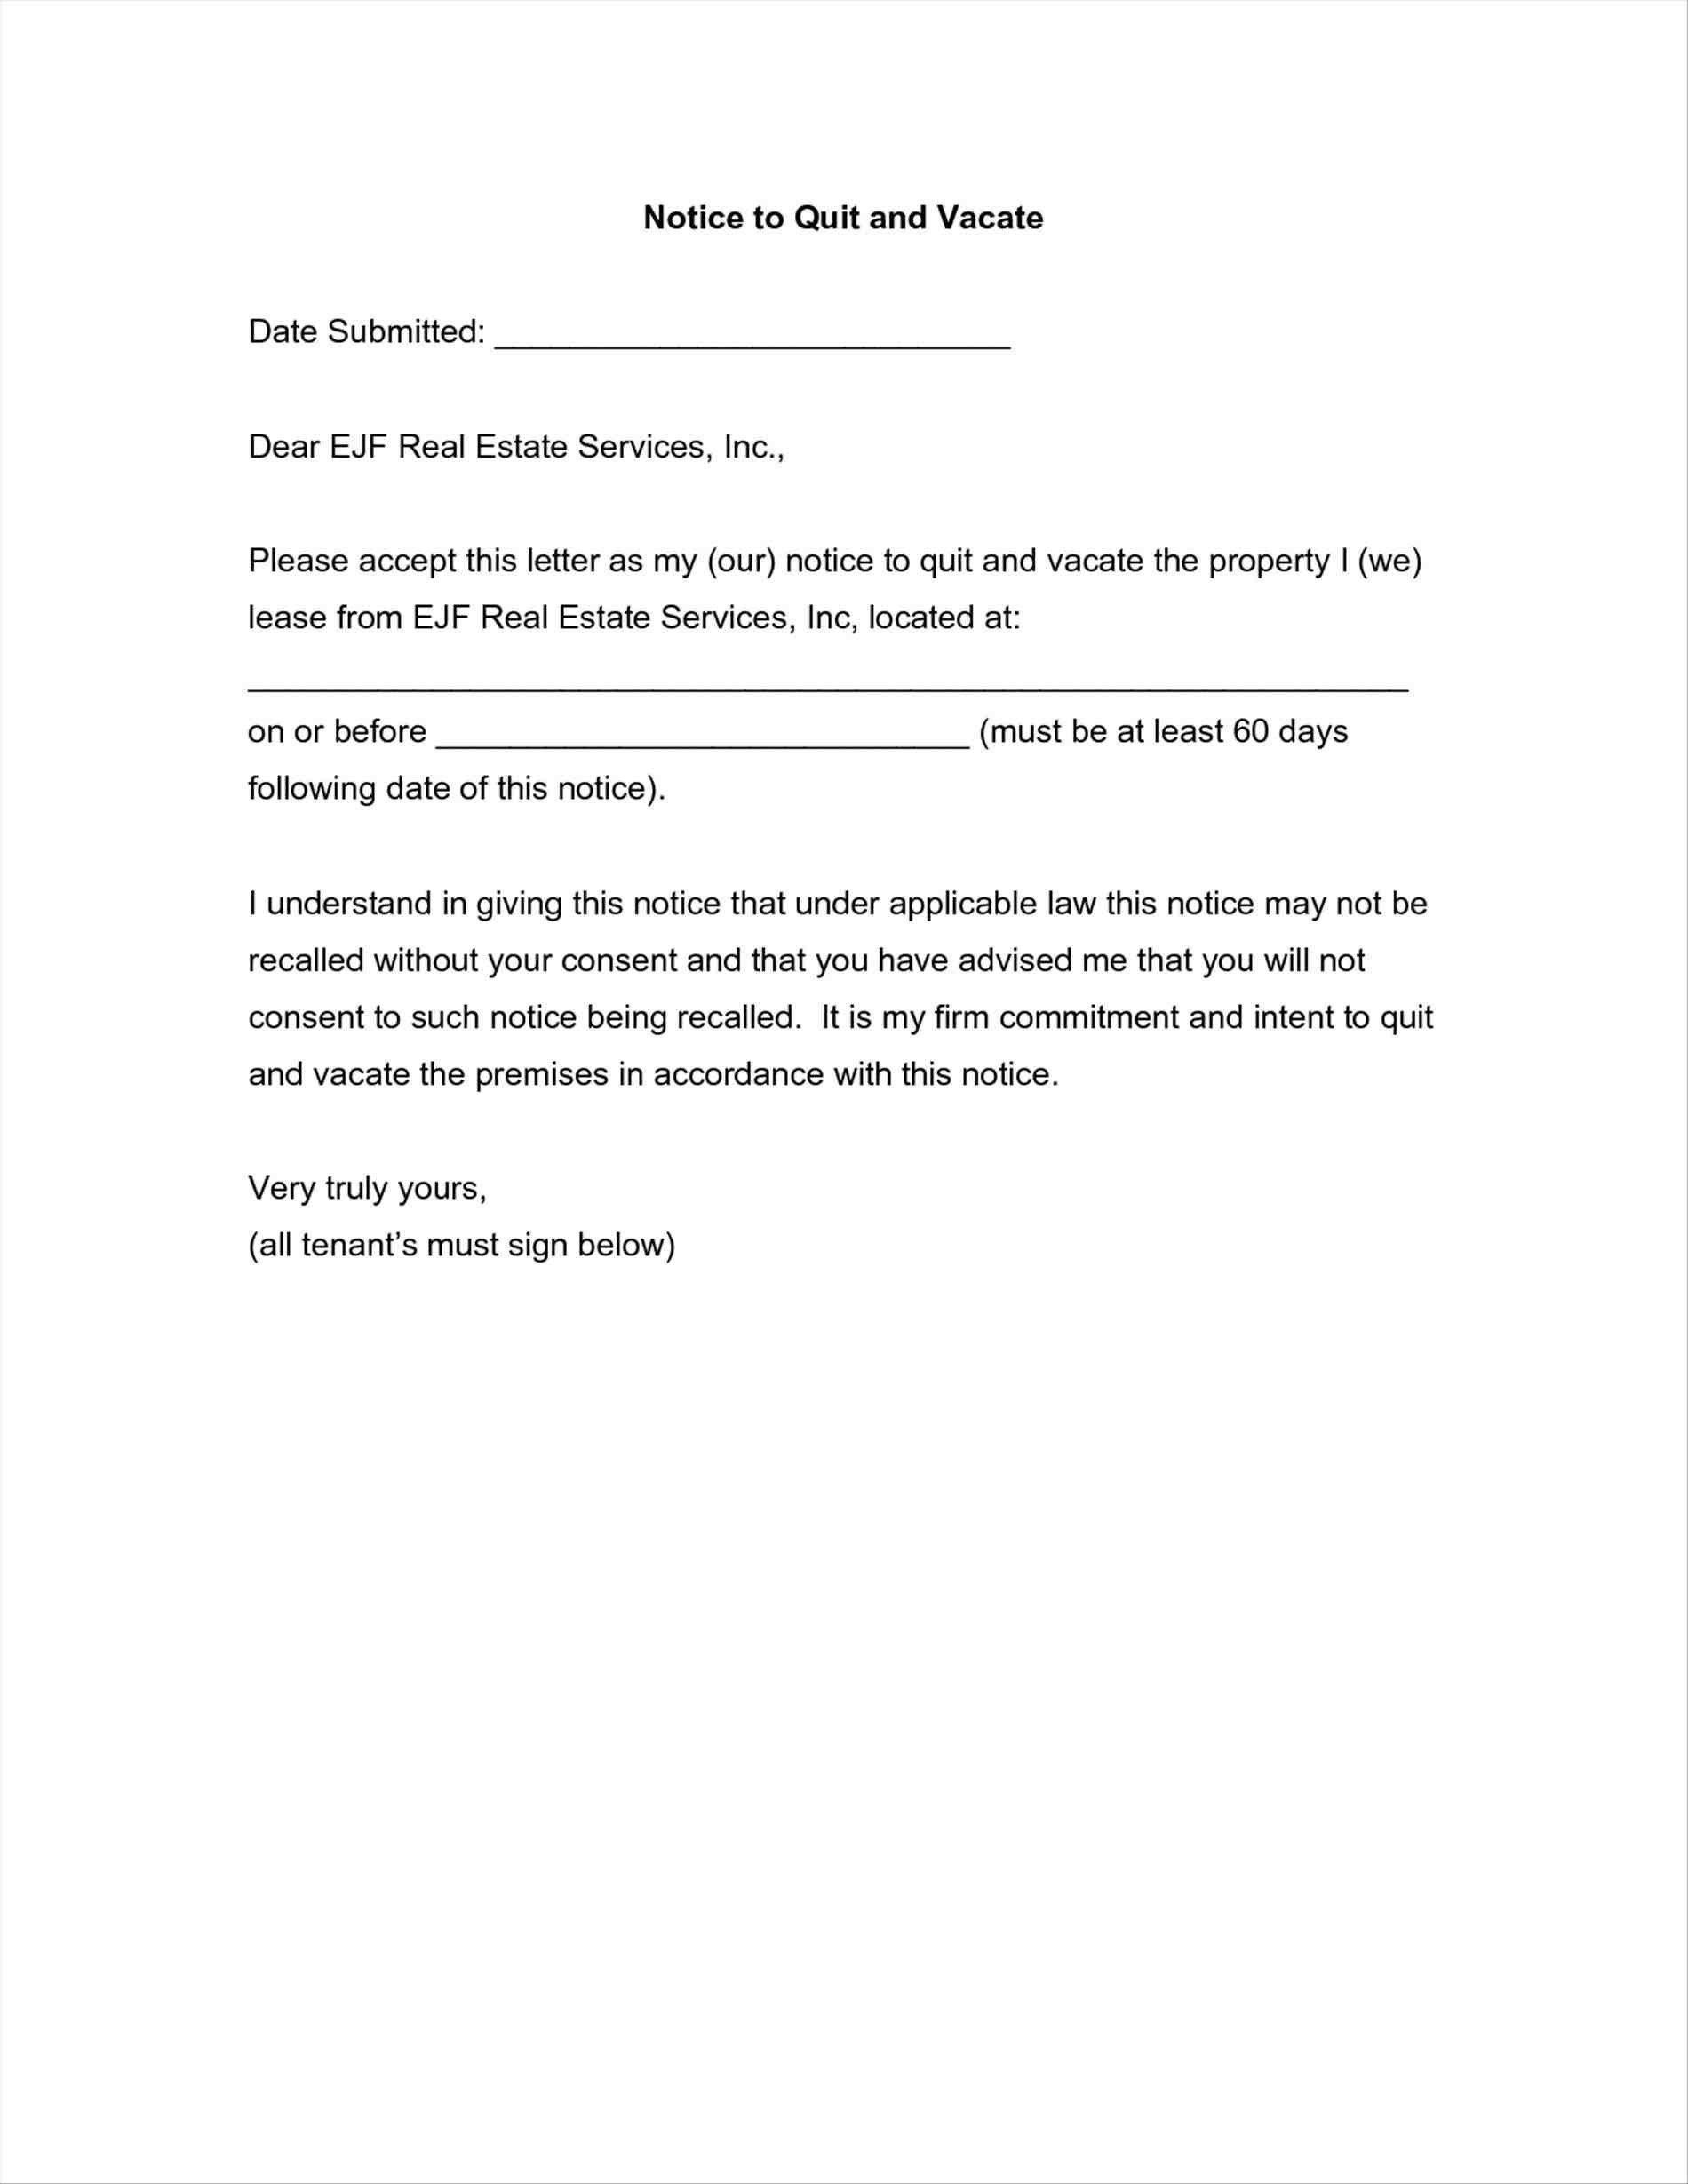 30 Day Eviction Letter Template - Template for 60 Day Notice to Vacate